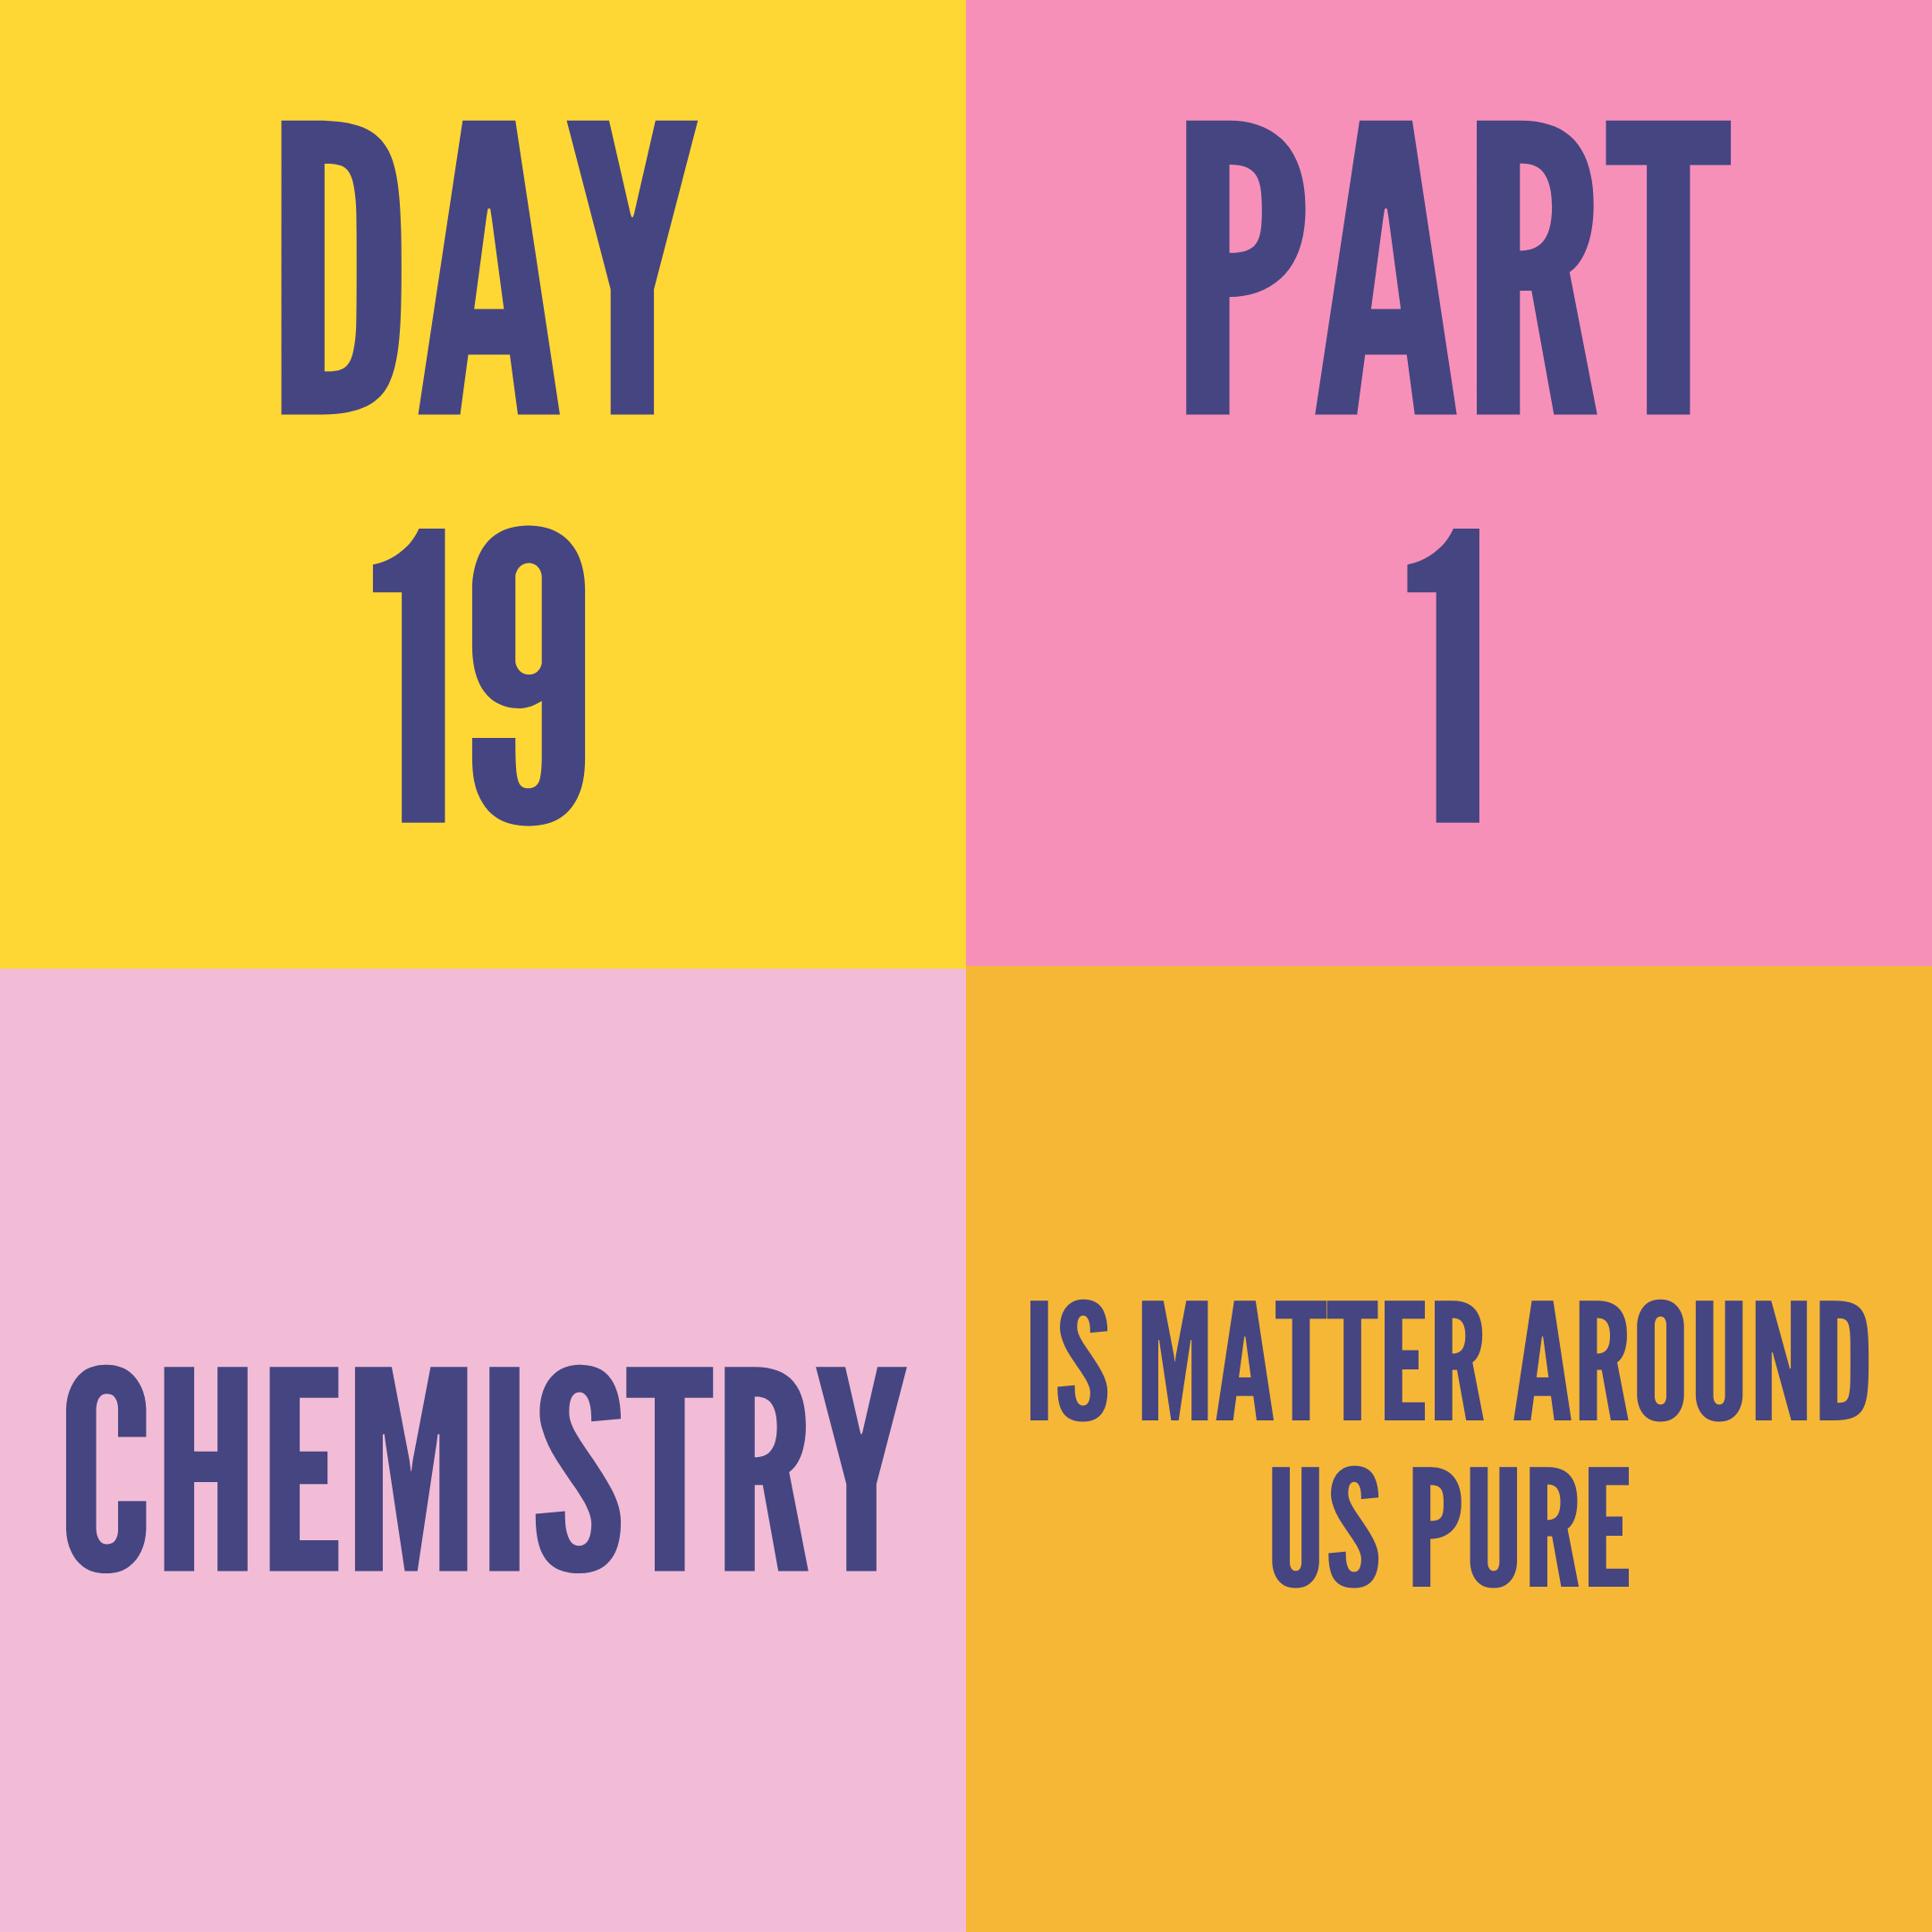 DAY-19 PART-1 IS MATTER AROUND US PURE